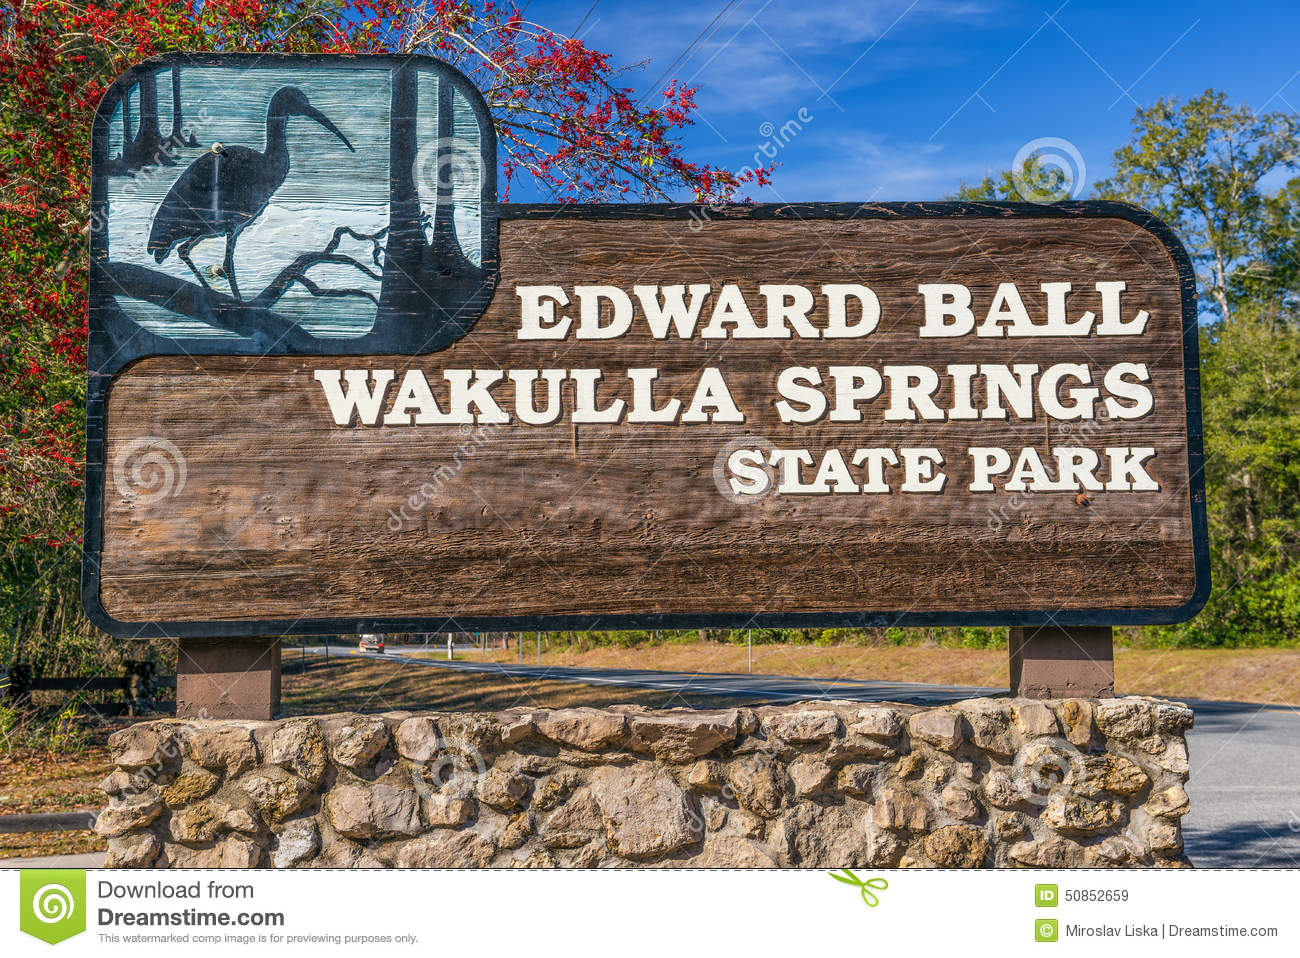 Edward Ball Wakulla Springs State Park Entrance Sign, Florida.